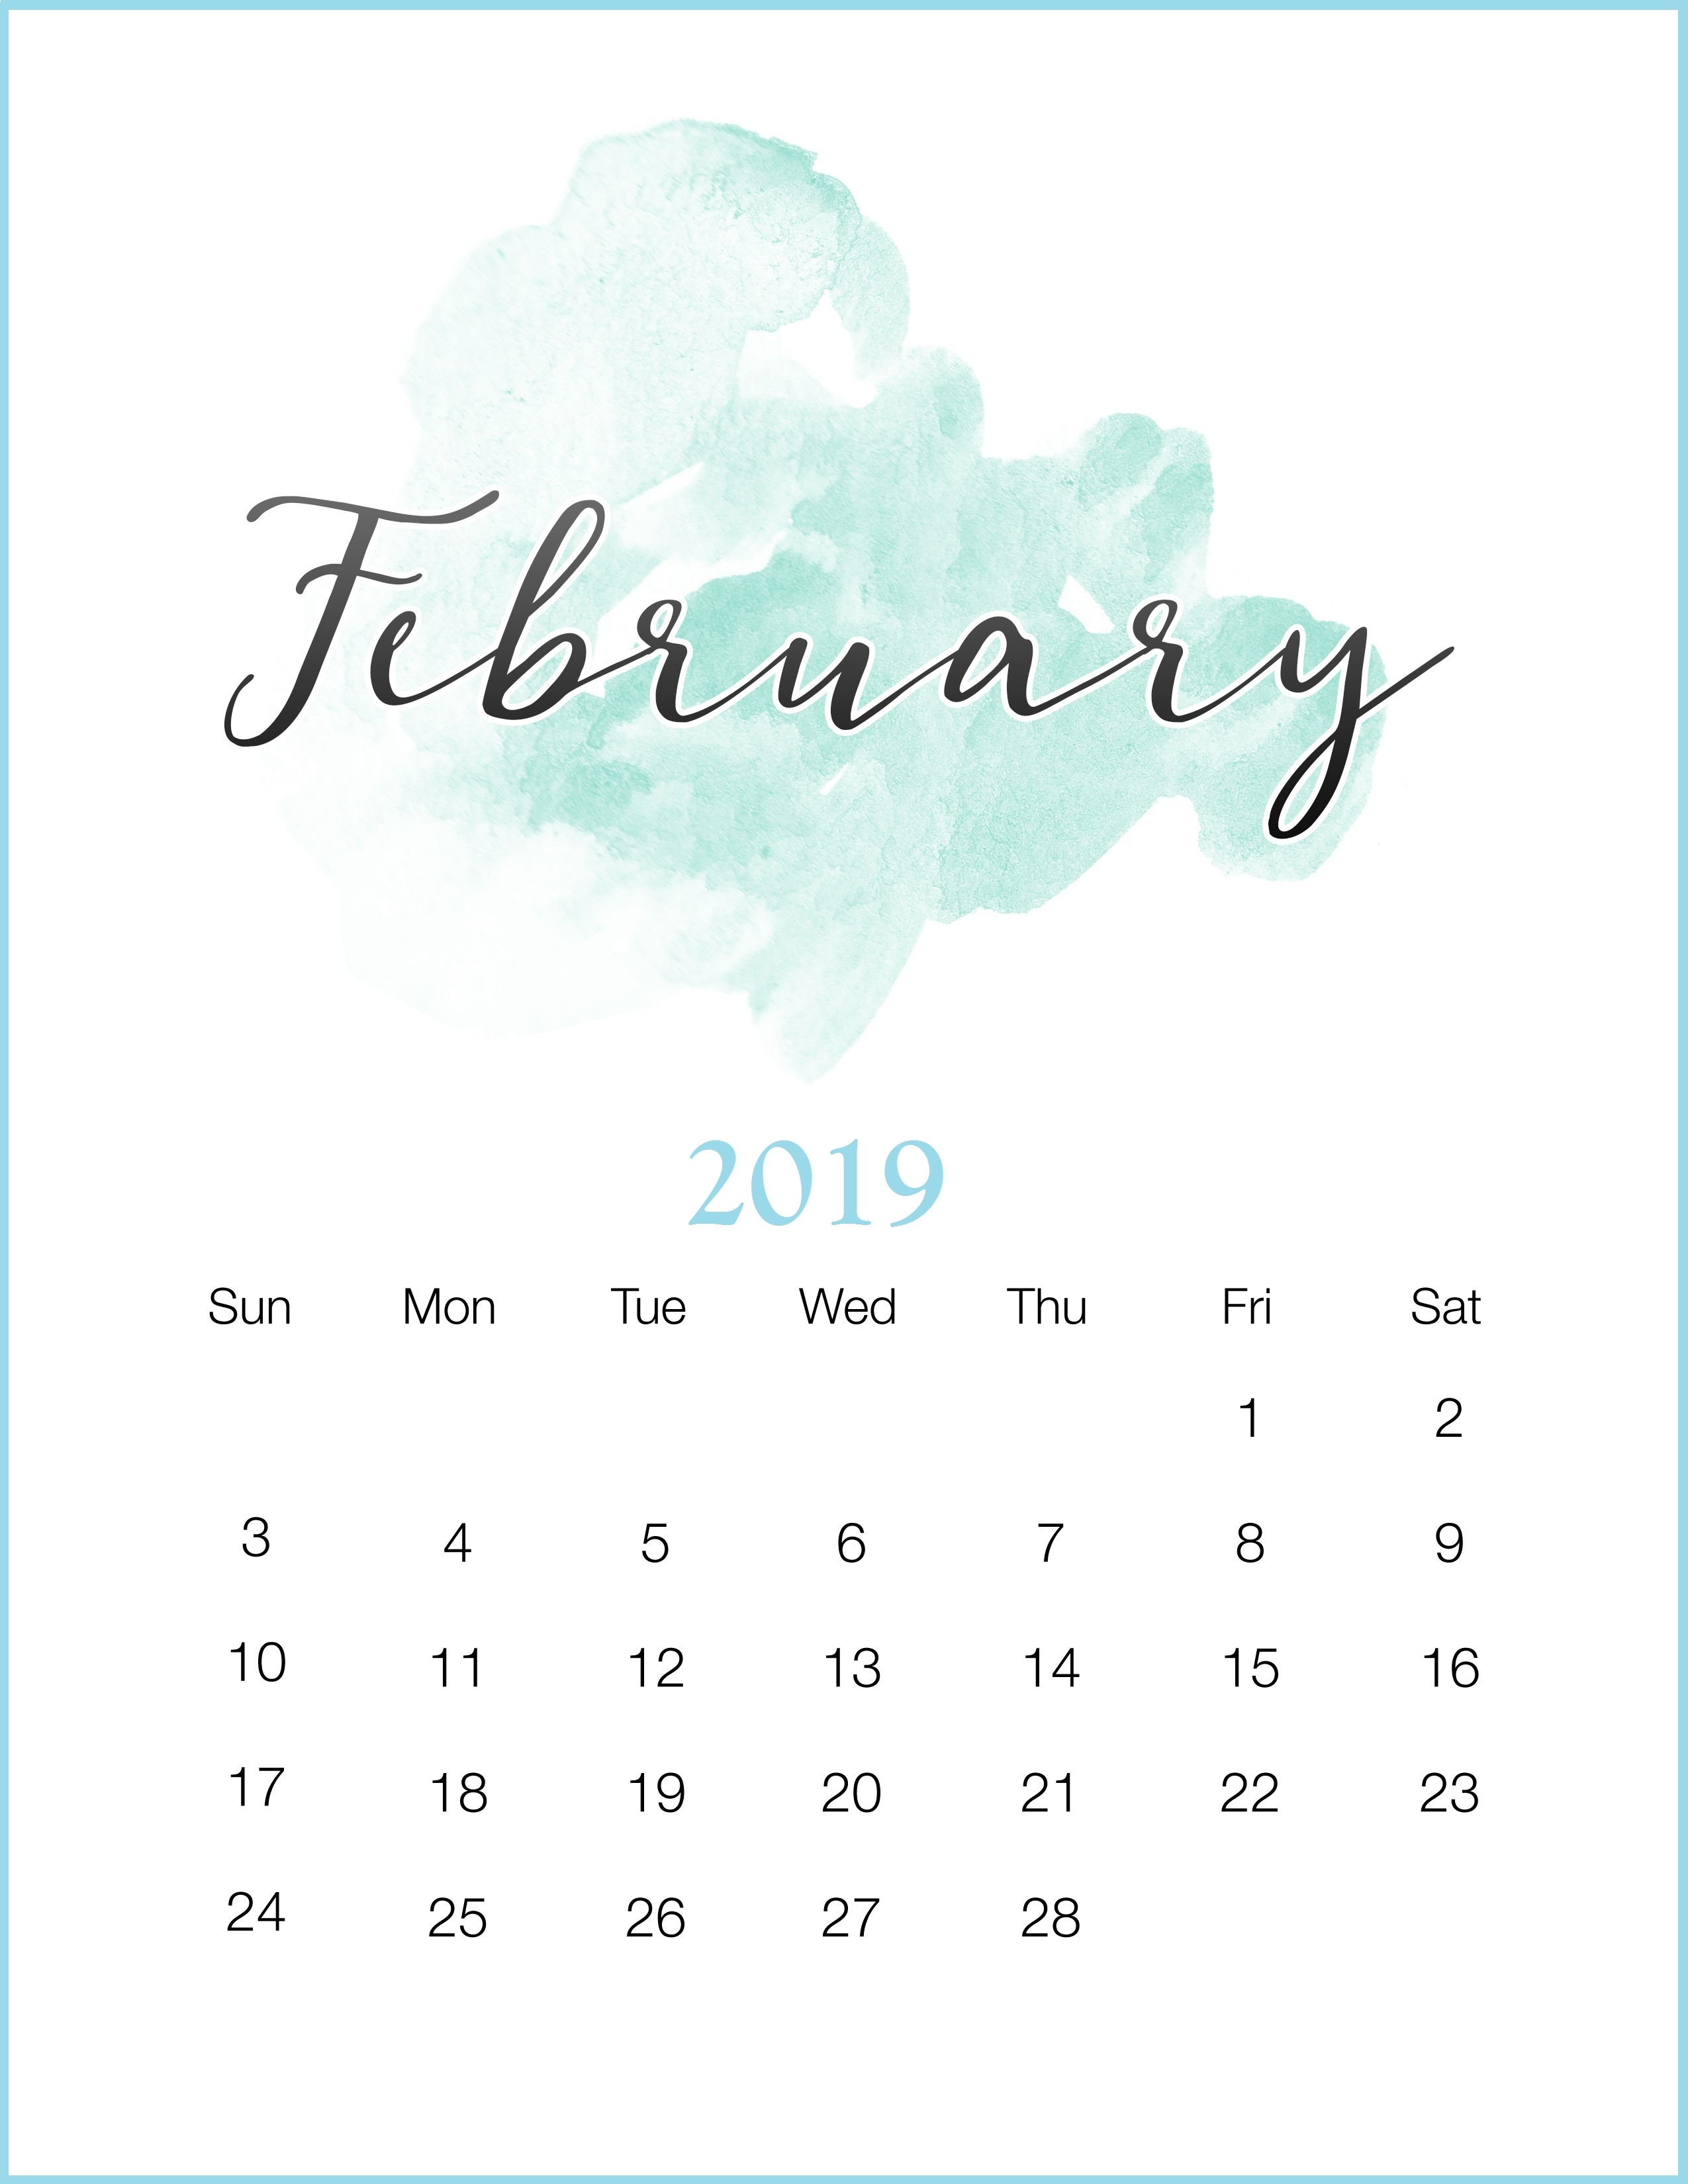 free template february 2019 editable calendar march 2019 calendar::Blank February 2019 Calendar